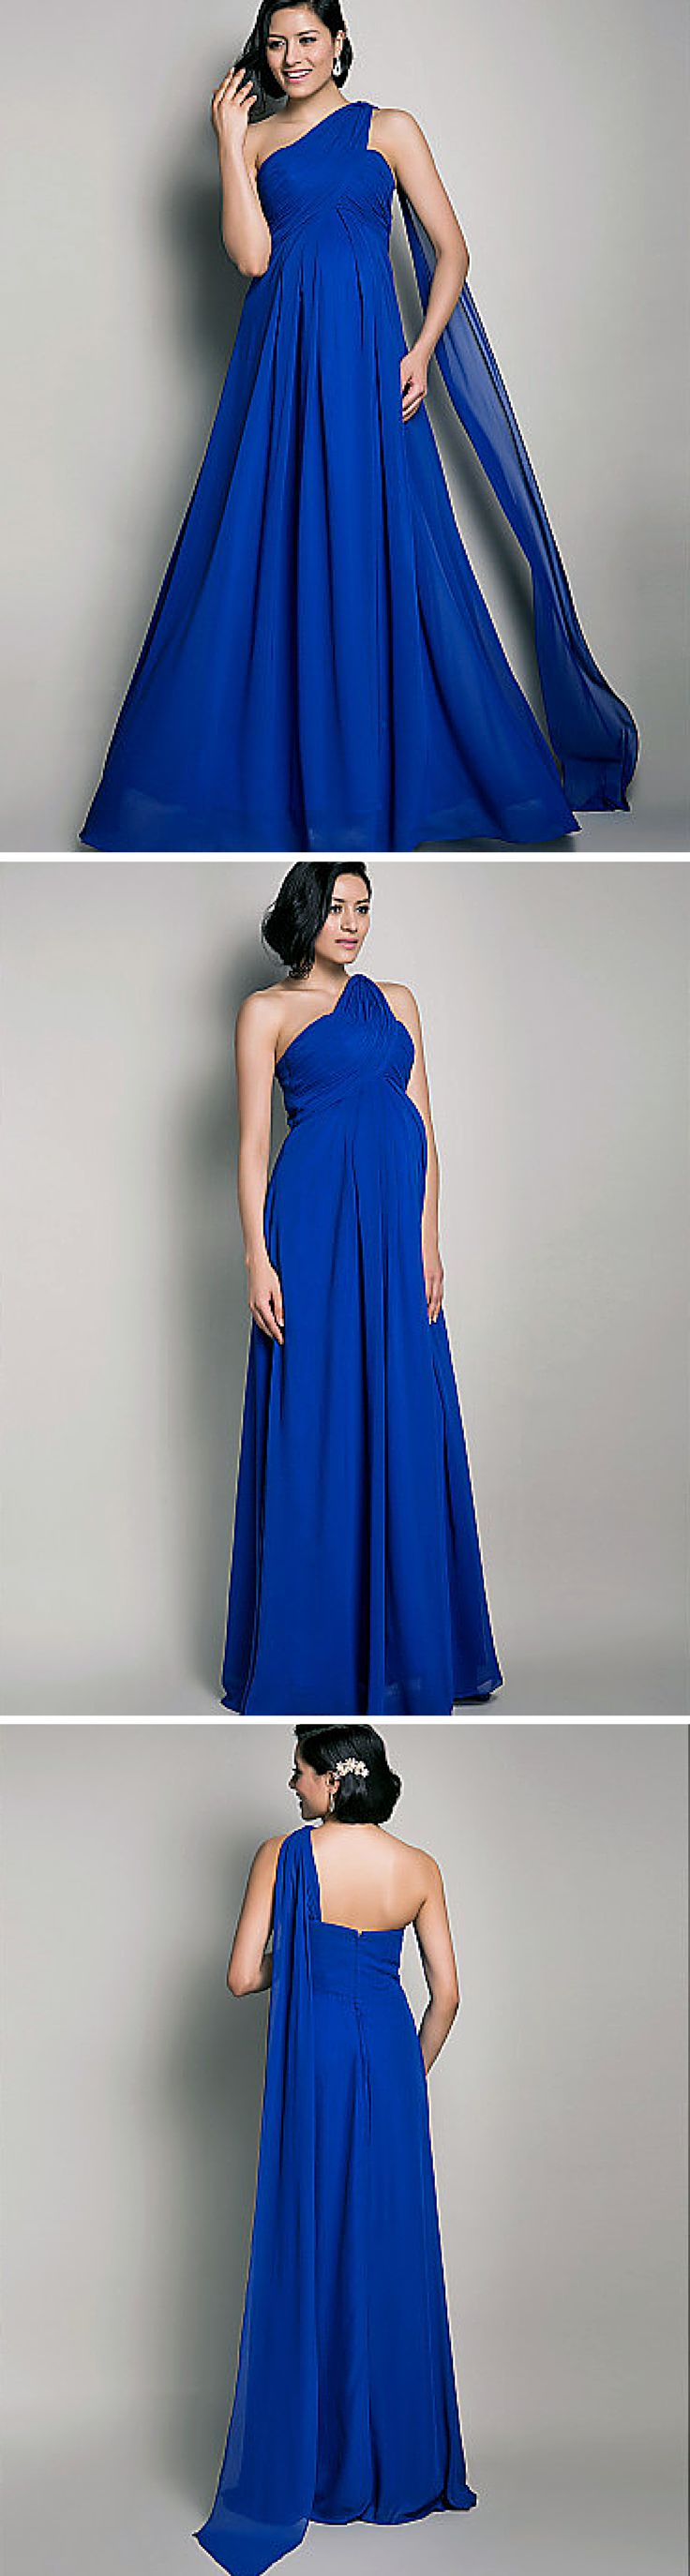 This maternity evening gown is such a beauty